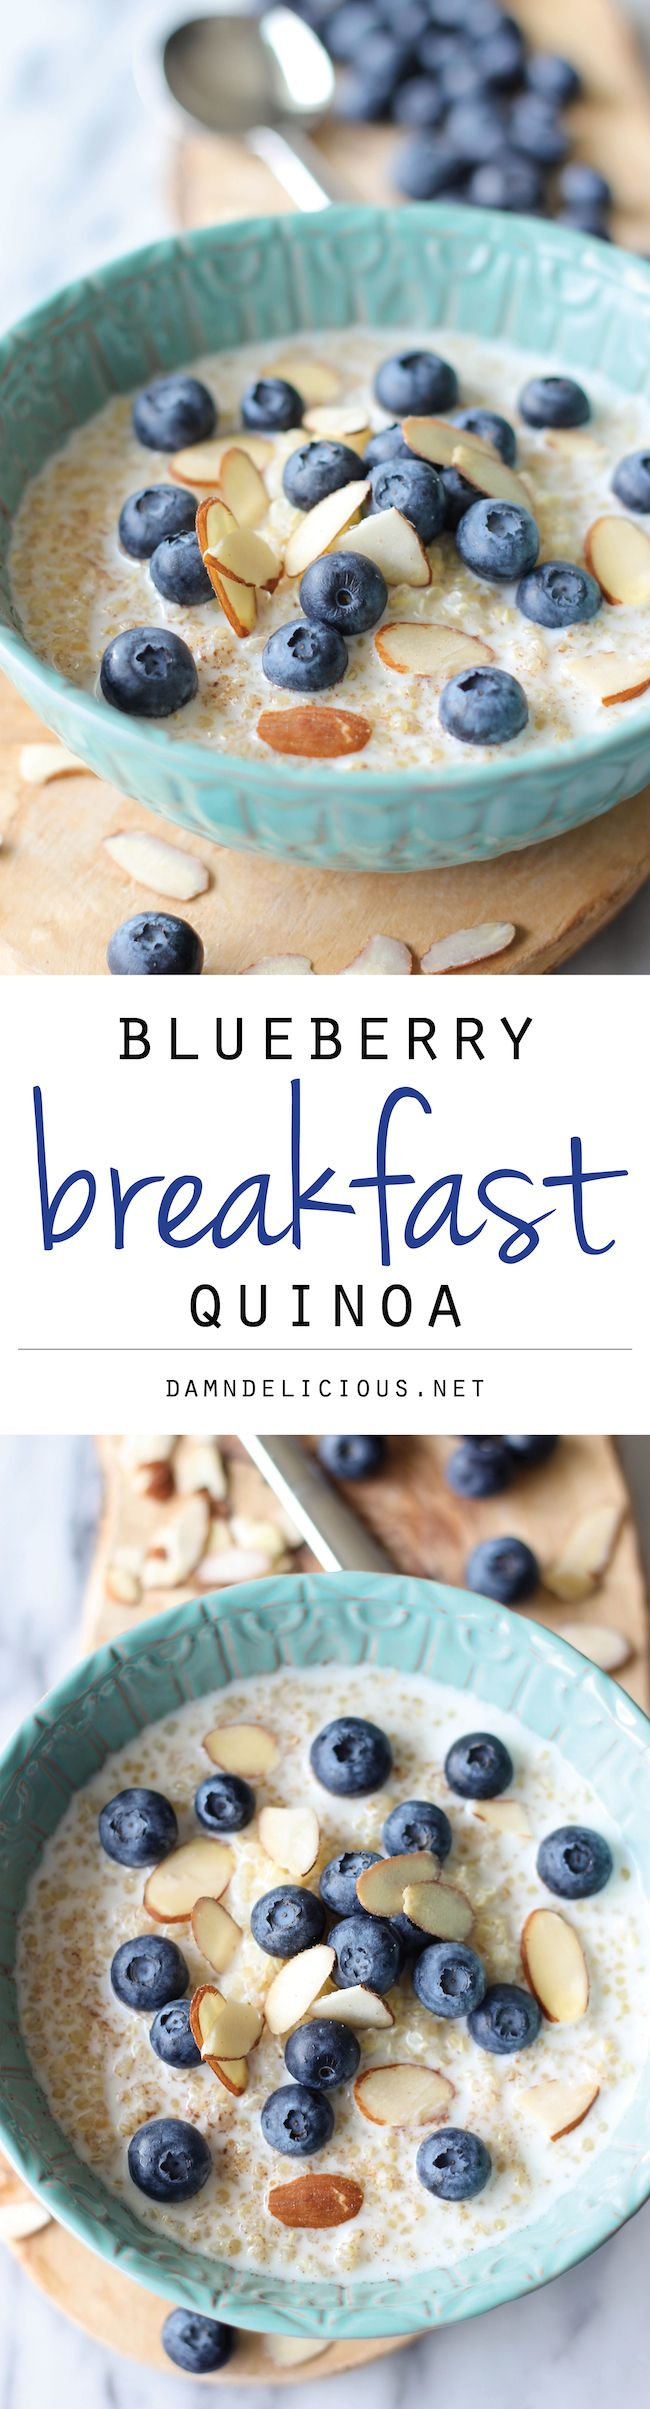 Blueberry Breakfast Quinoa: start your day off right with this protein-packed breakfast bowl.